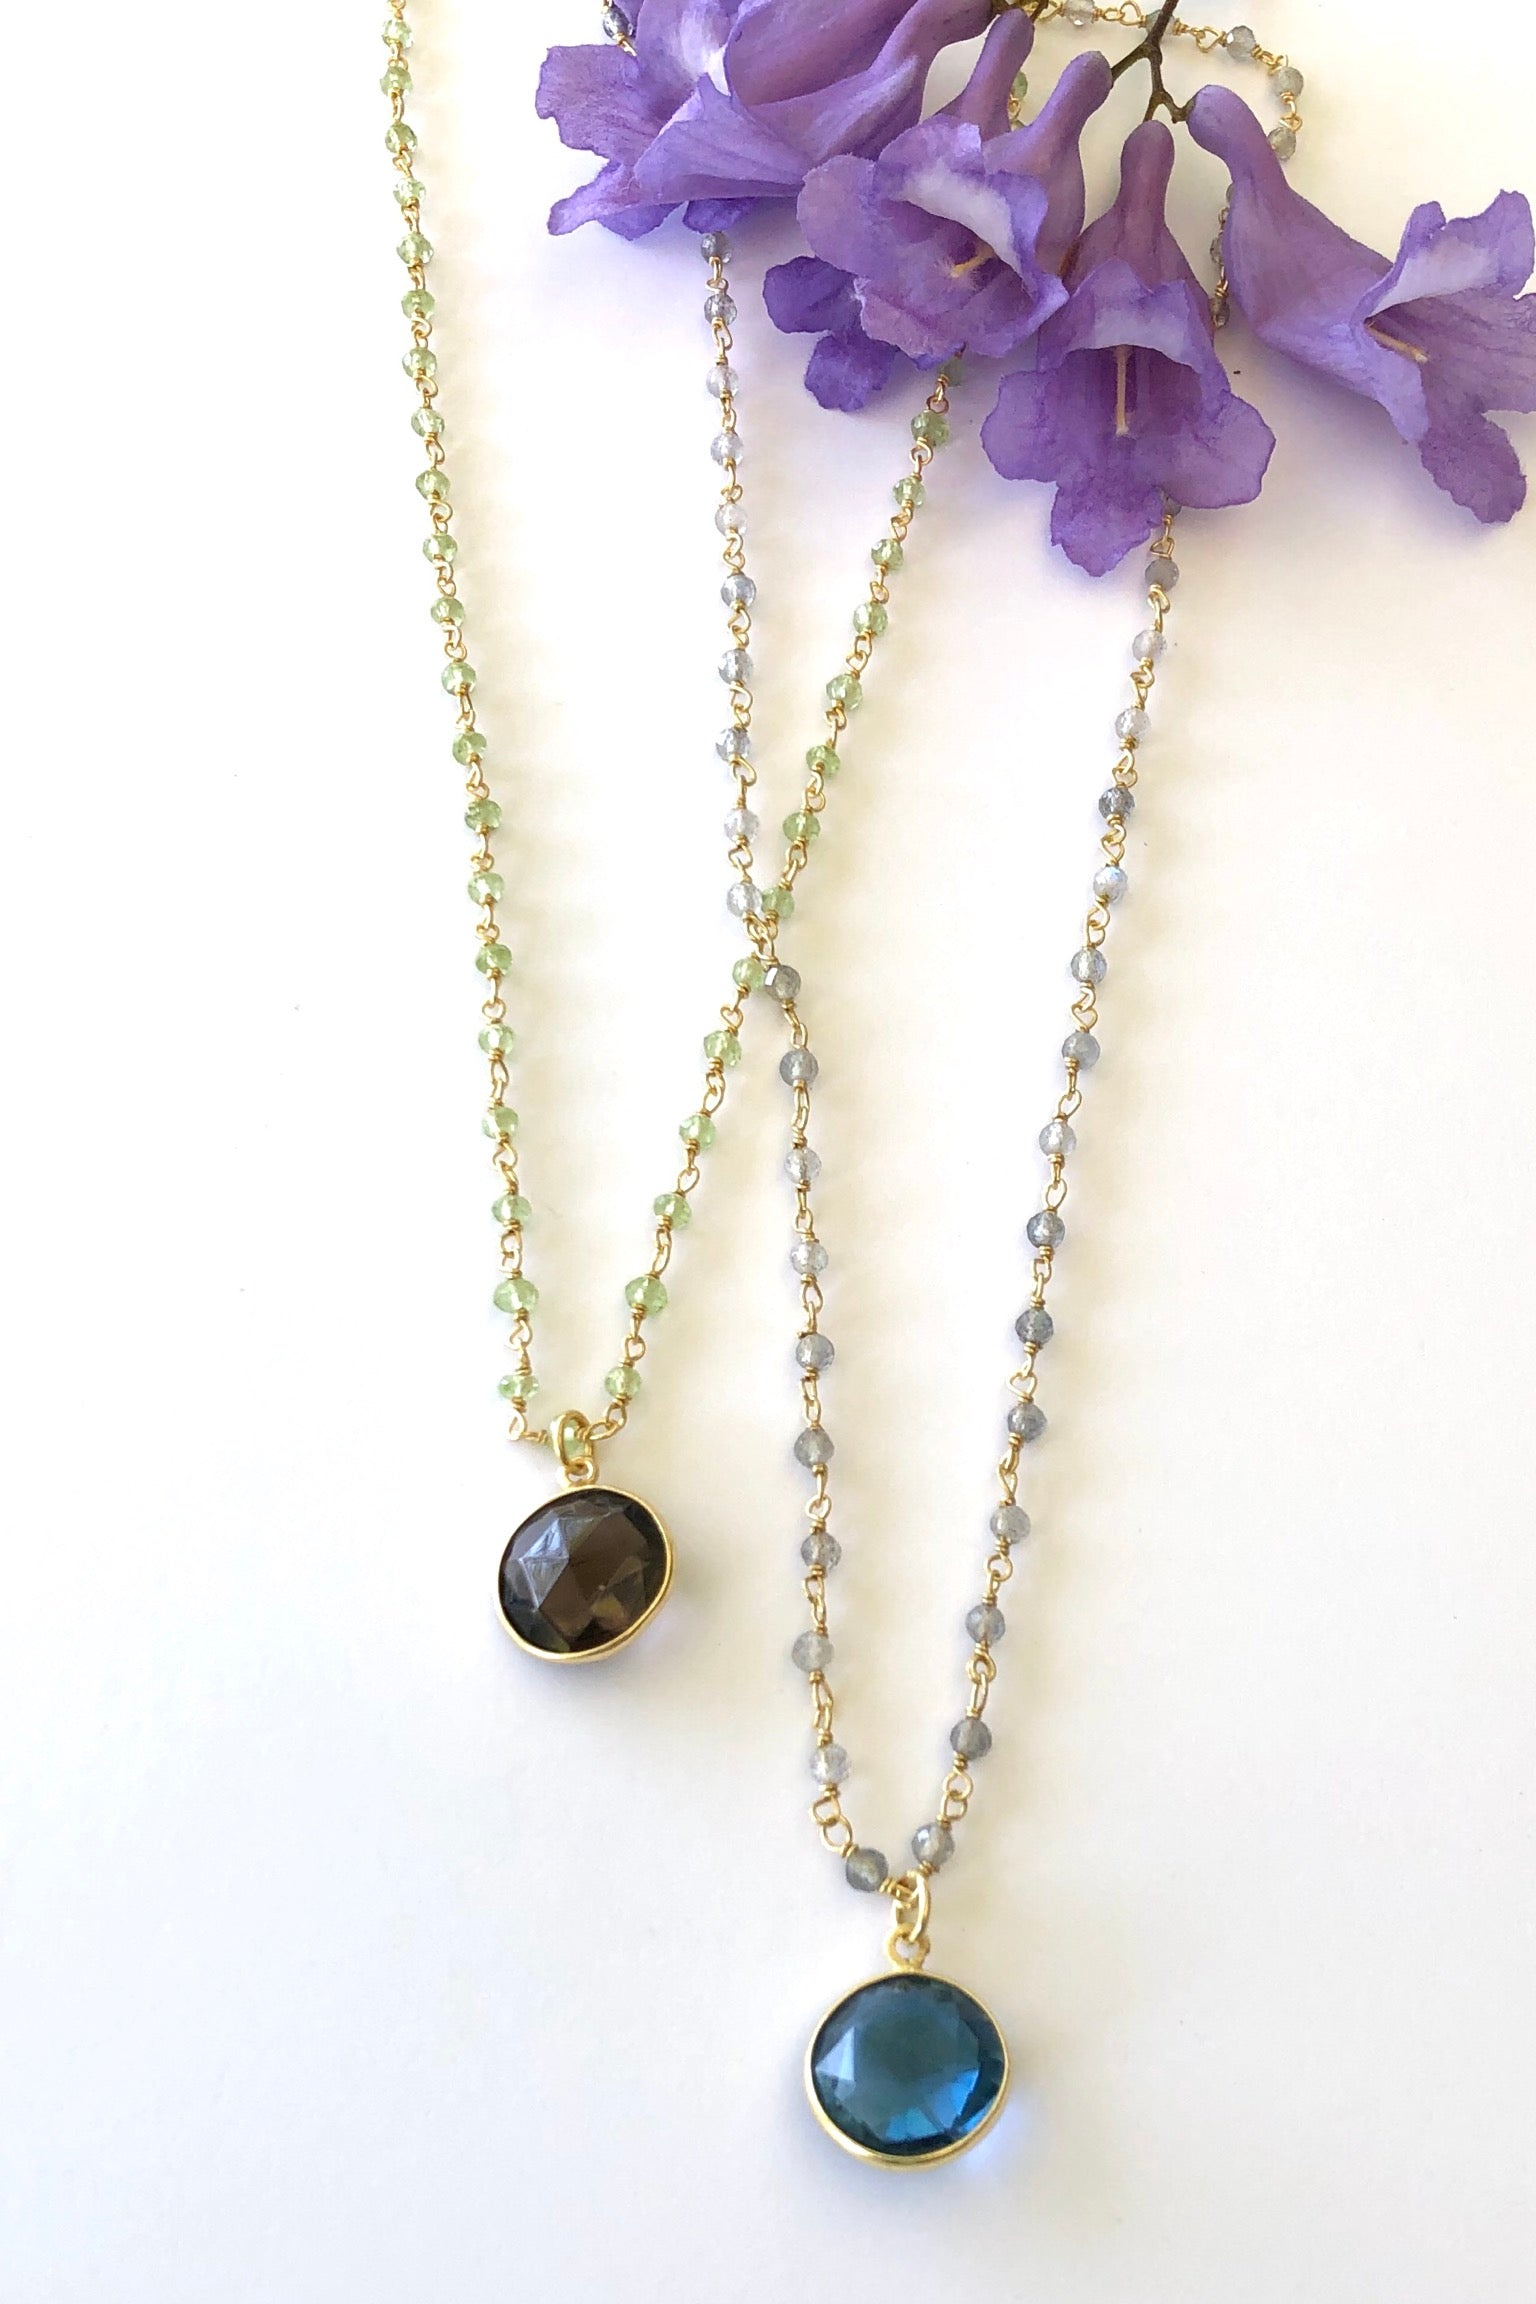 Oracle Venezia Necklace Round, Vintage bohemian inspired necklace features 50cm length Gold vermeil and fine clear beaded chain, a circular stone pendant set in gold vermeil choosing from Blue Quartz or Smokey Quartz.